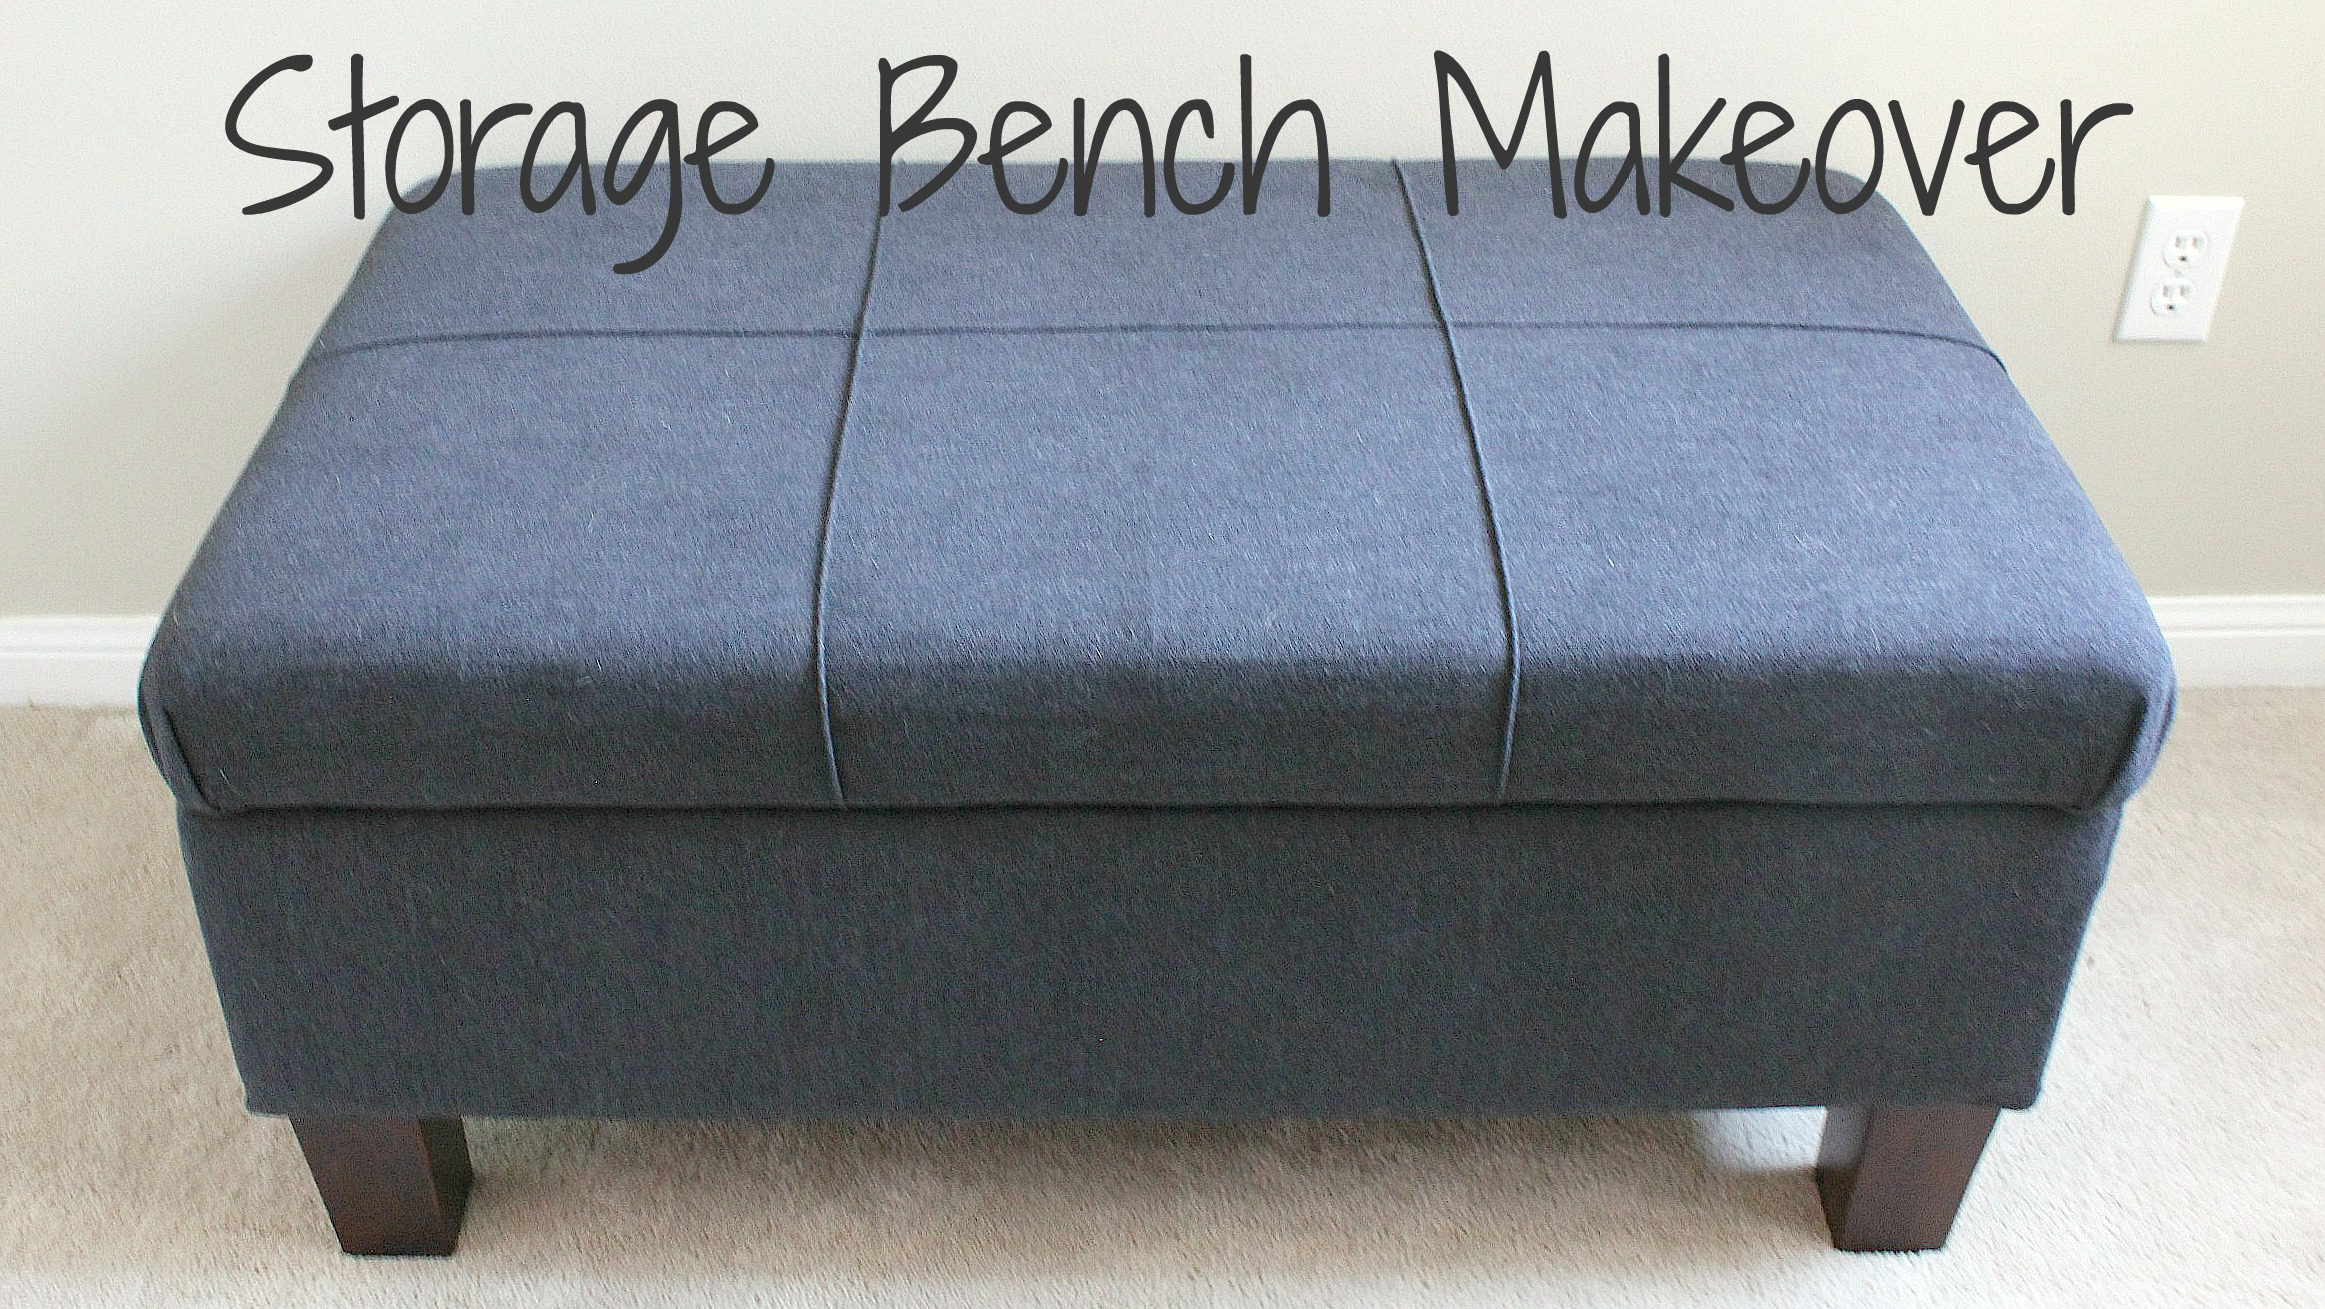 storage bench makeover